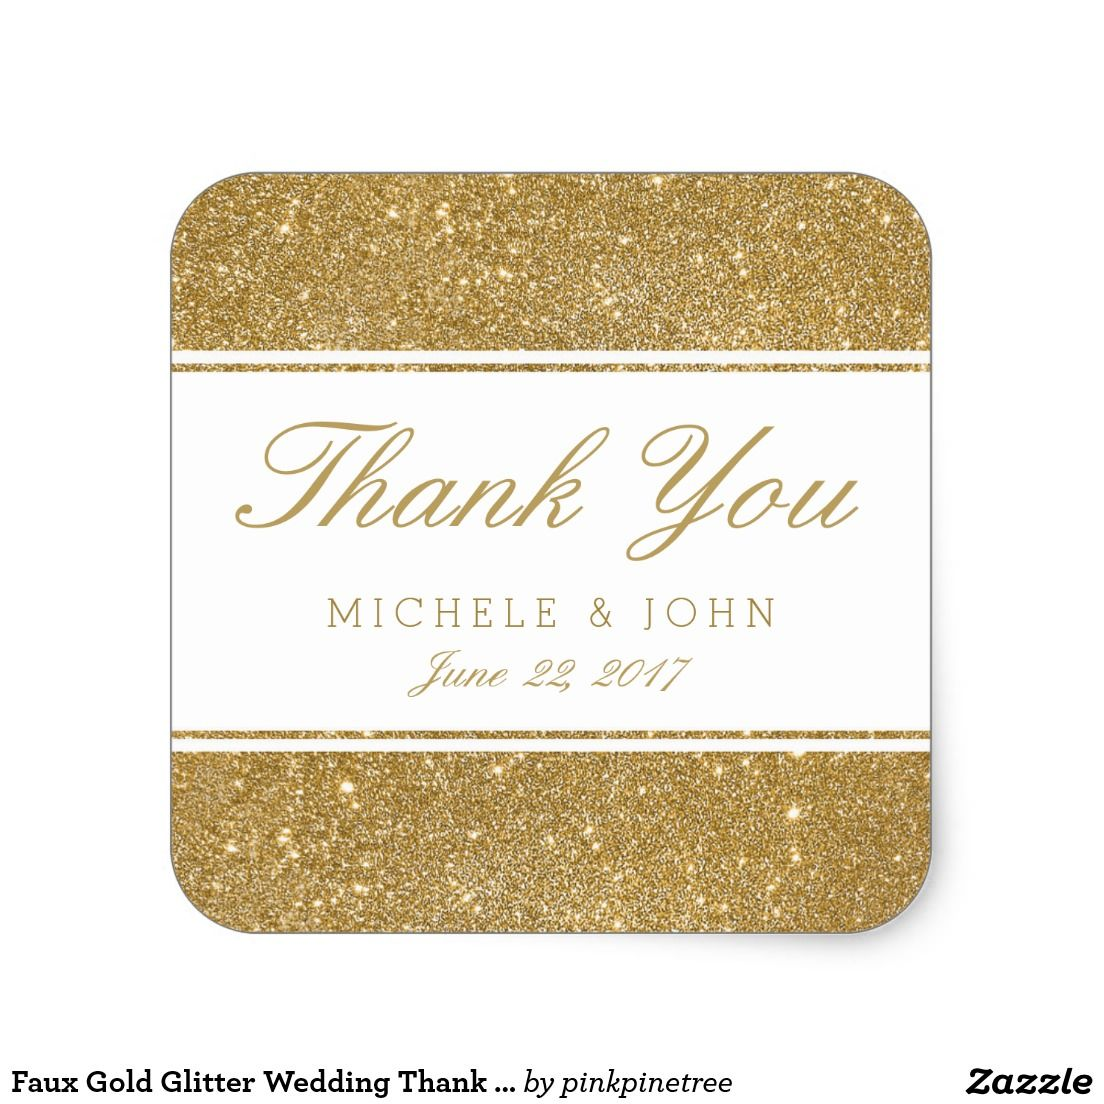 Faux Gold Glitter Wedding Thank You Favor Stickers | Jared & Mandys ...